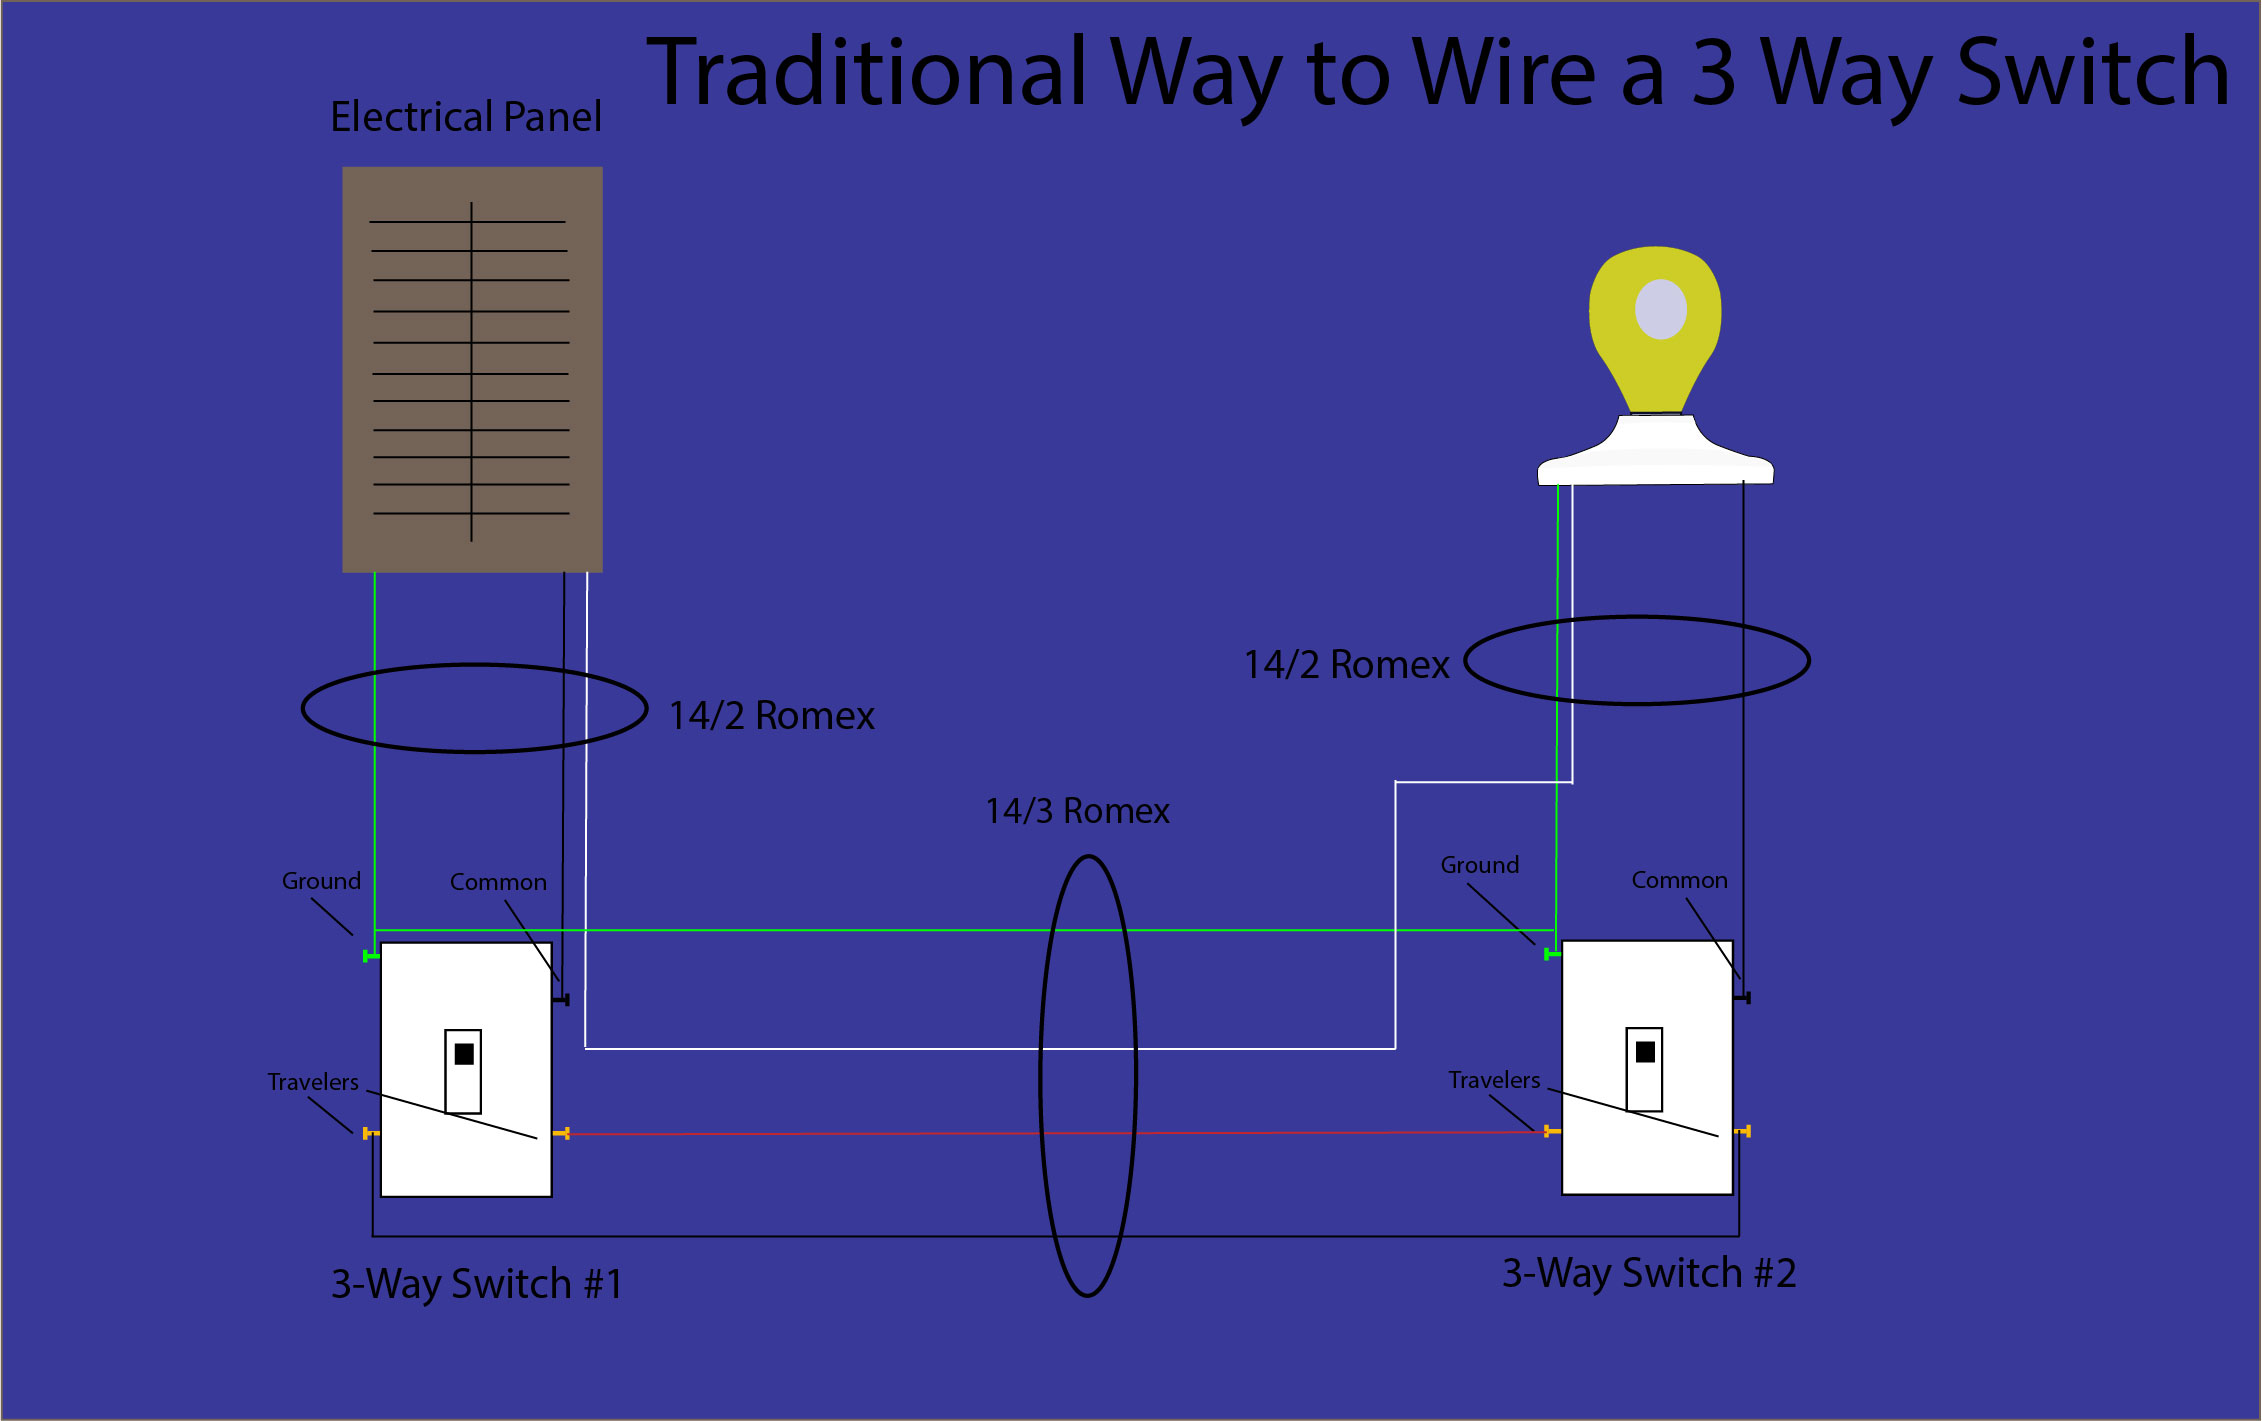 Hook up 3 way electrical switch | 4 Way Switch Wiring ...  Wire Way Switch Wiring Diagram on 2 lights one switch diagram, 4 wire switch wiring diagram, three switches one light diagram, 2 wire pull, 2 battery switch wiring diagram, switch connection diagram, 3 wire switch wiring diagram, 2 switches 1 light diagram, 2-way light switch diagram, 5 wire switch wiring diagram, two-way switch diagram,